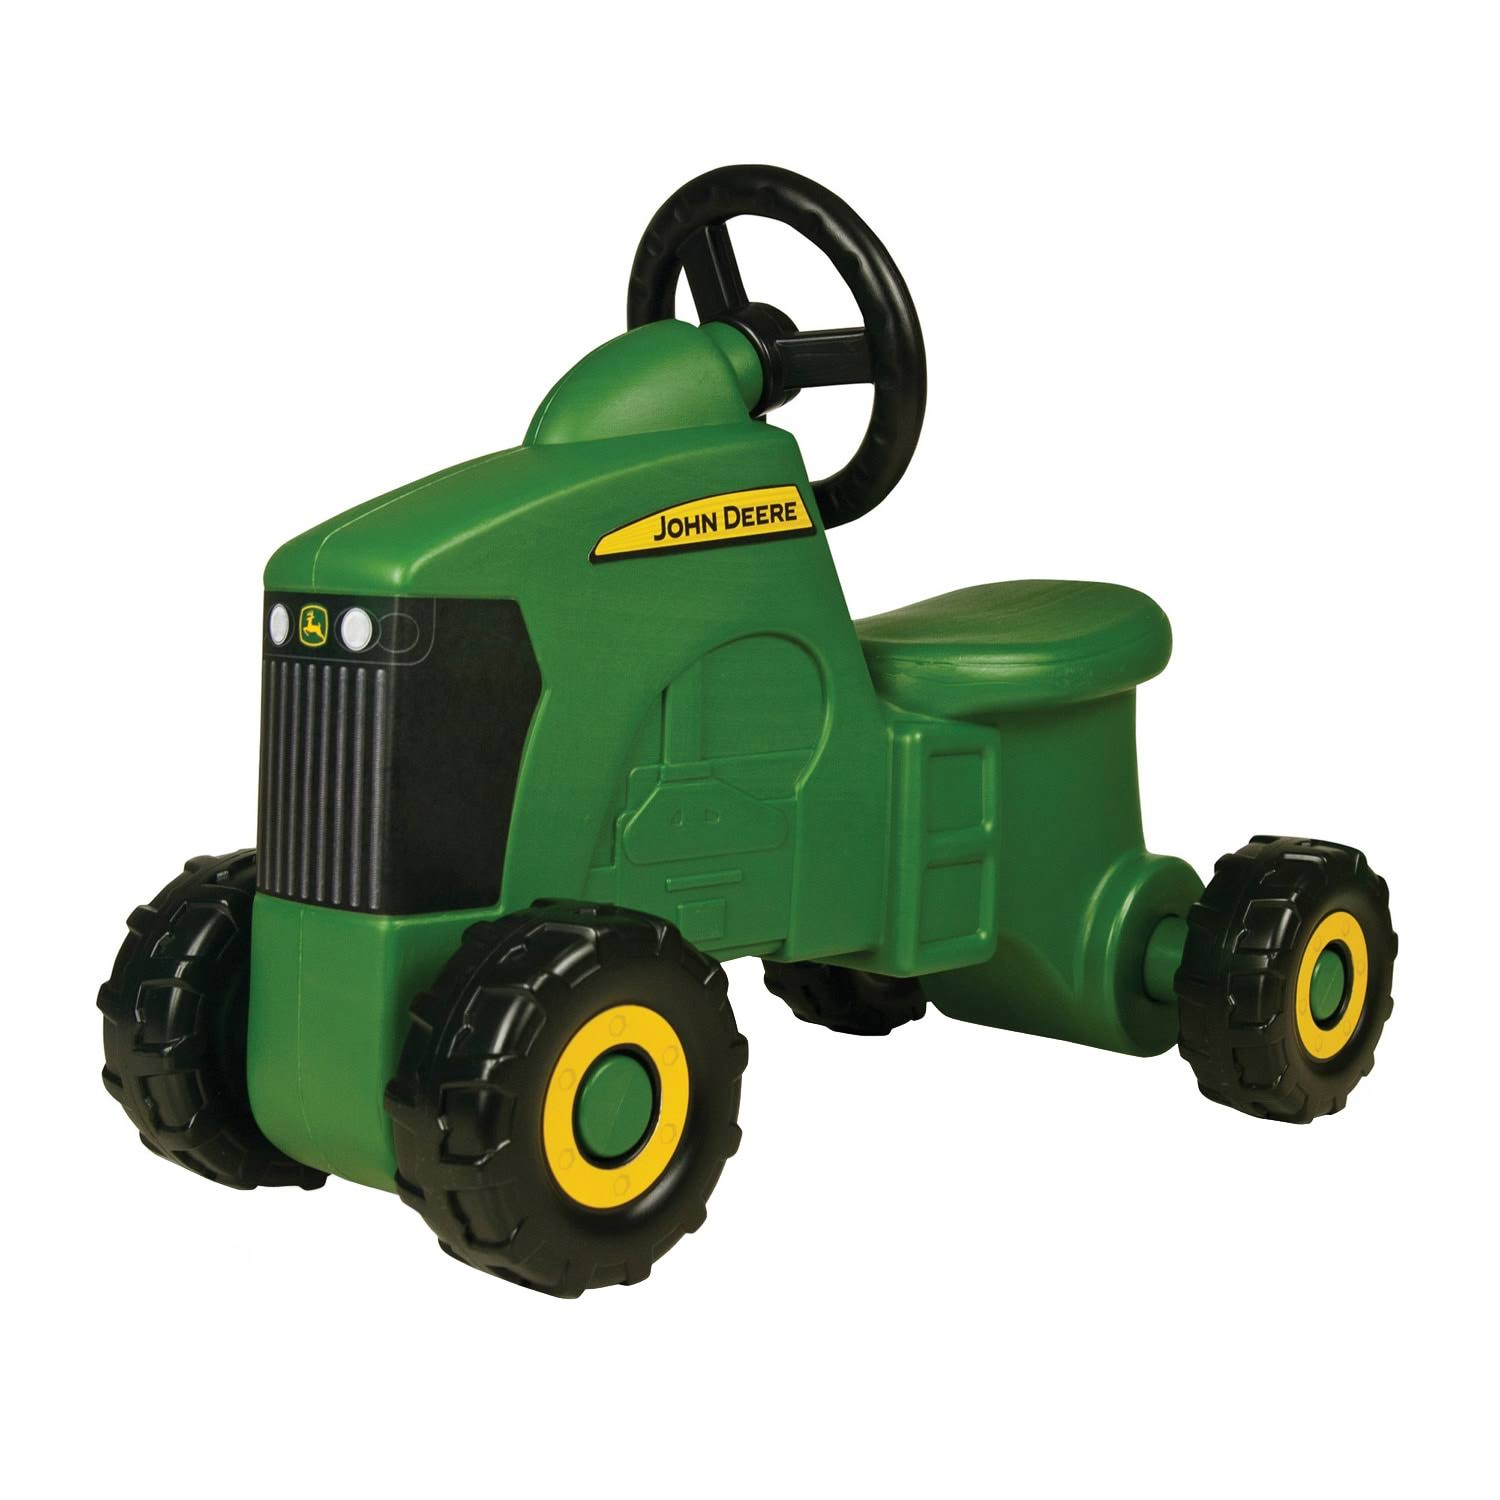 John Deere Foot to Floor Tractor - Green